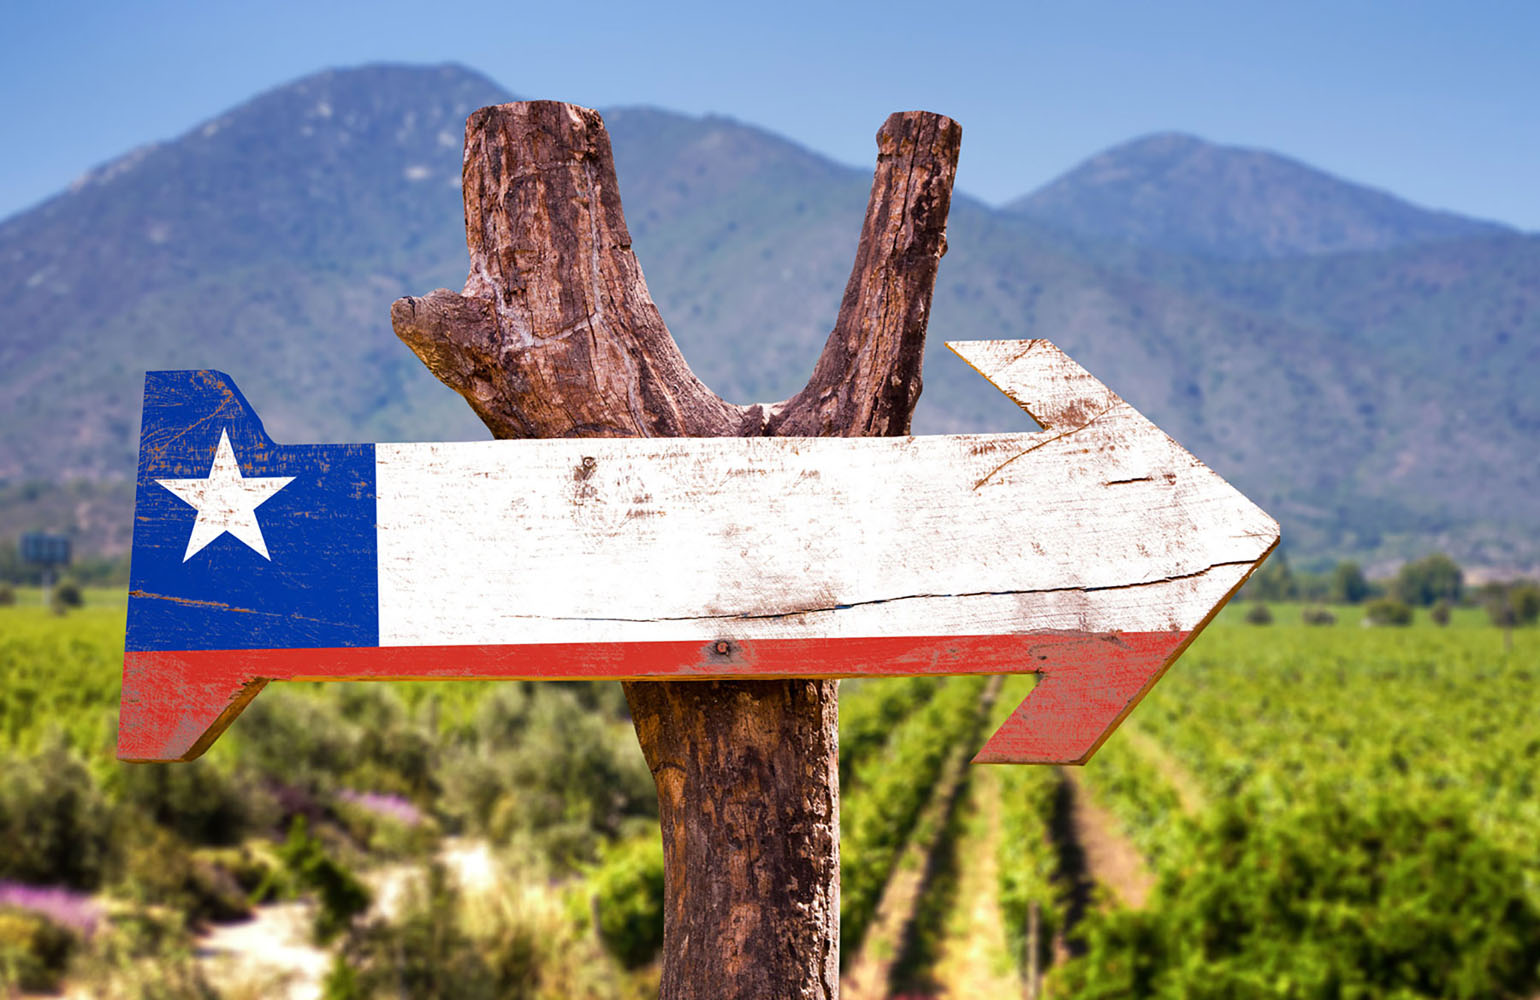 A sign featuring an arrow and the flag of Chile encouraging visitors to explore